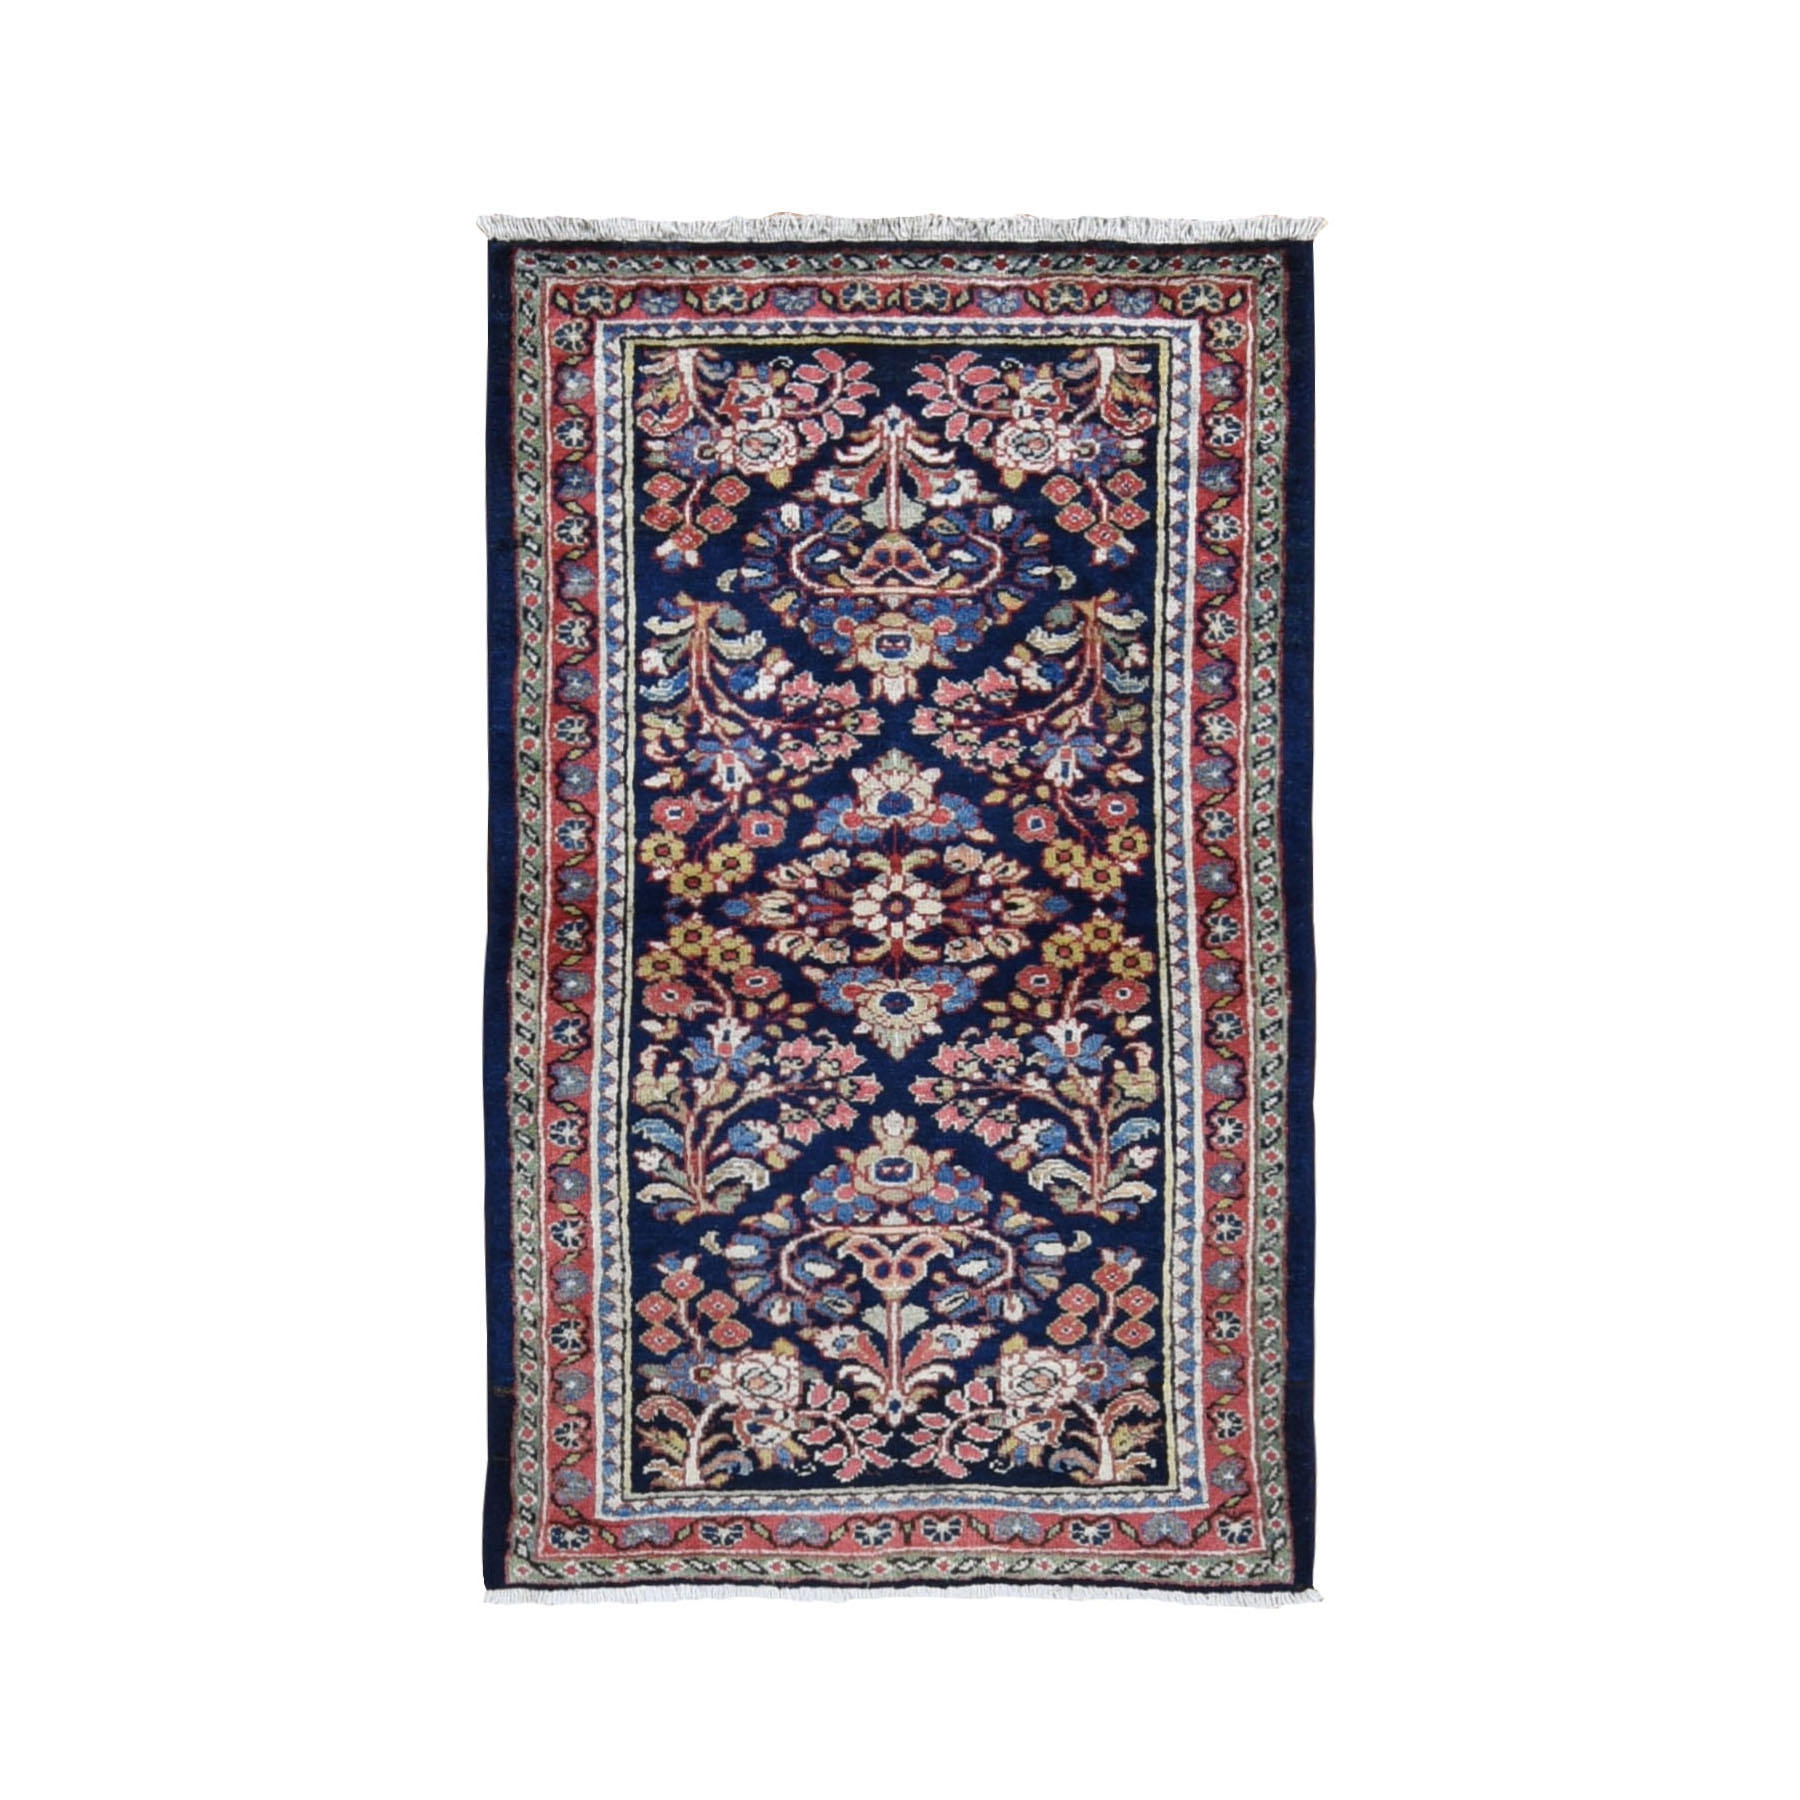 "3'x5'3"" Navy Blue Vintage Persian Sarouk Exc Cond Pure Wool Hand Woven Bohemian Rug"